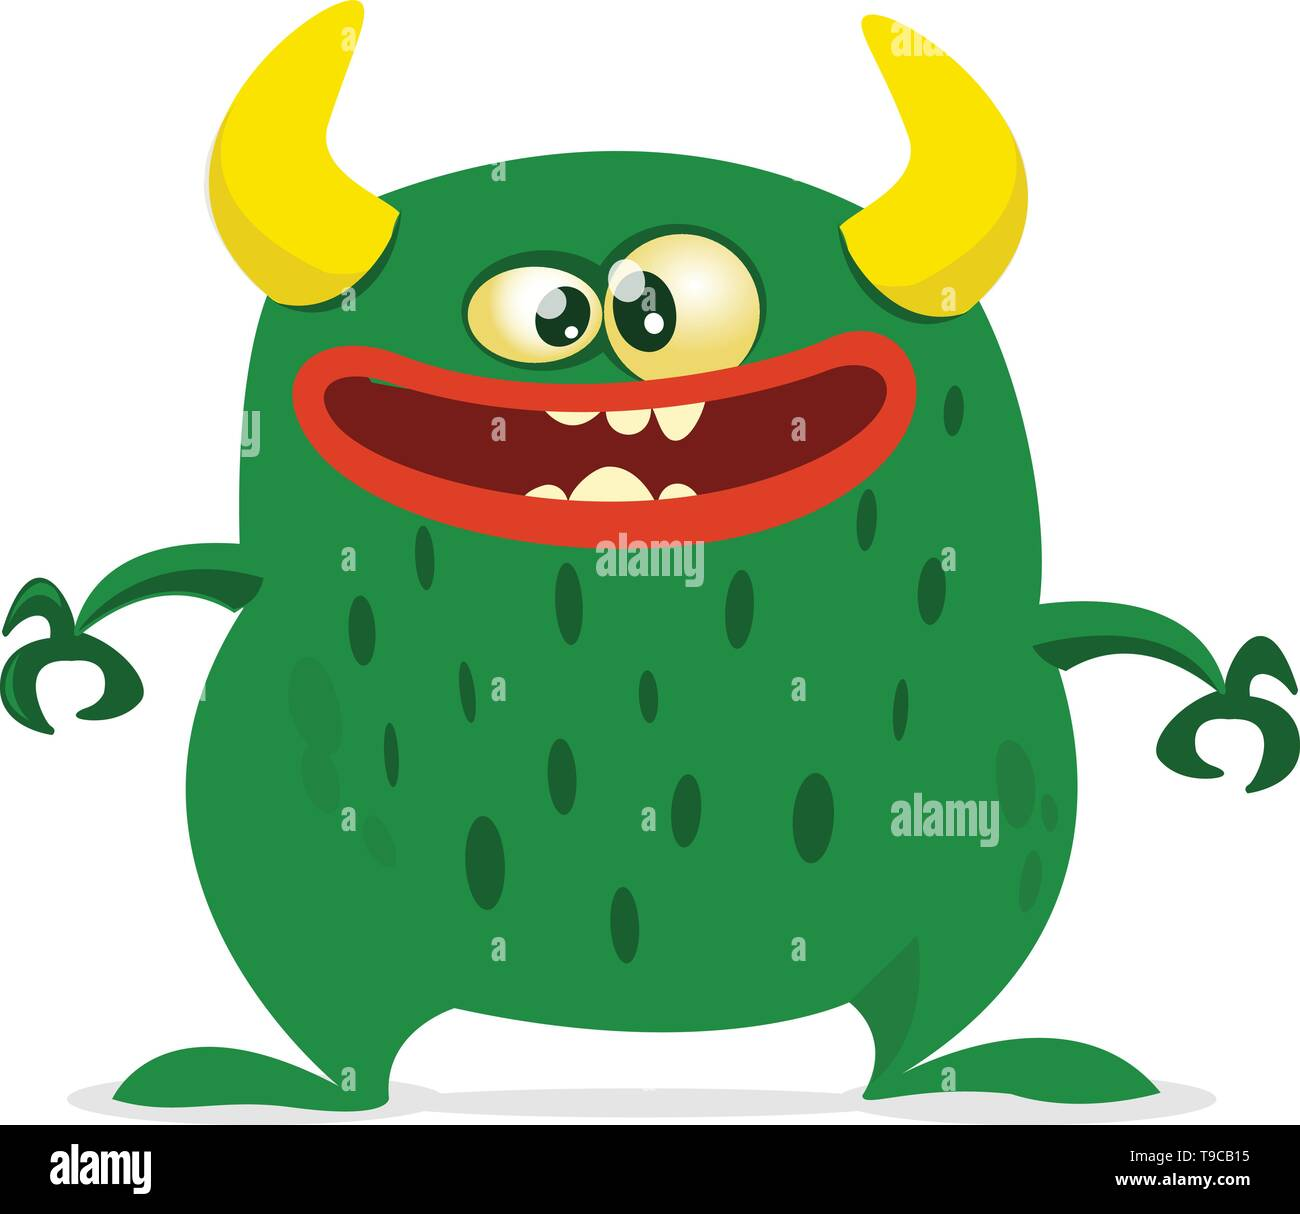 Cartoon vector monster. Monster alien illustration with surprised expression. Shocking green alien design for Halloween - Stock Image